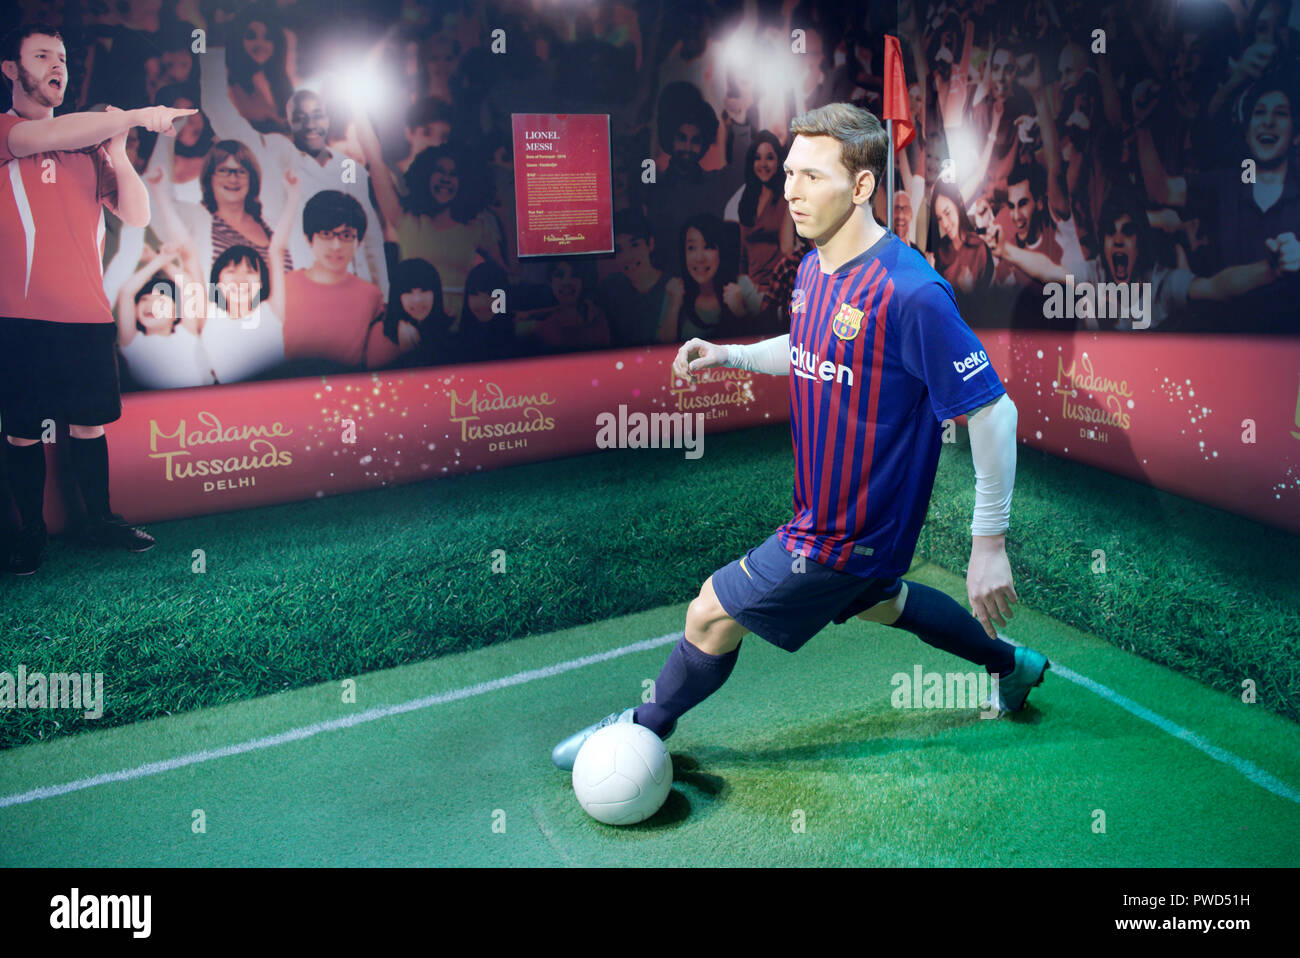 Wax figure of Argentine professional football player Lionel Messi at Madame Tussauds museum, Delhi - Stock Image